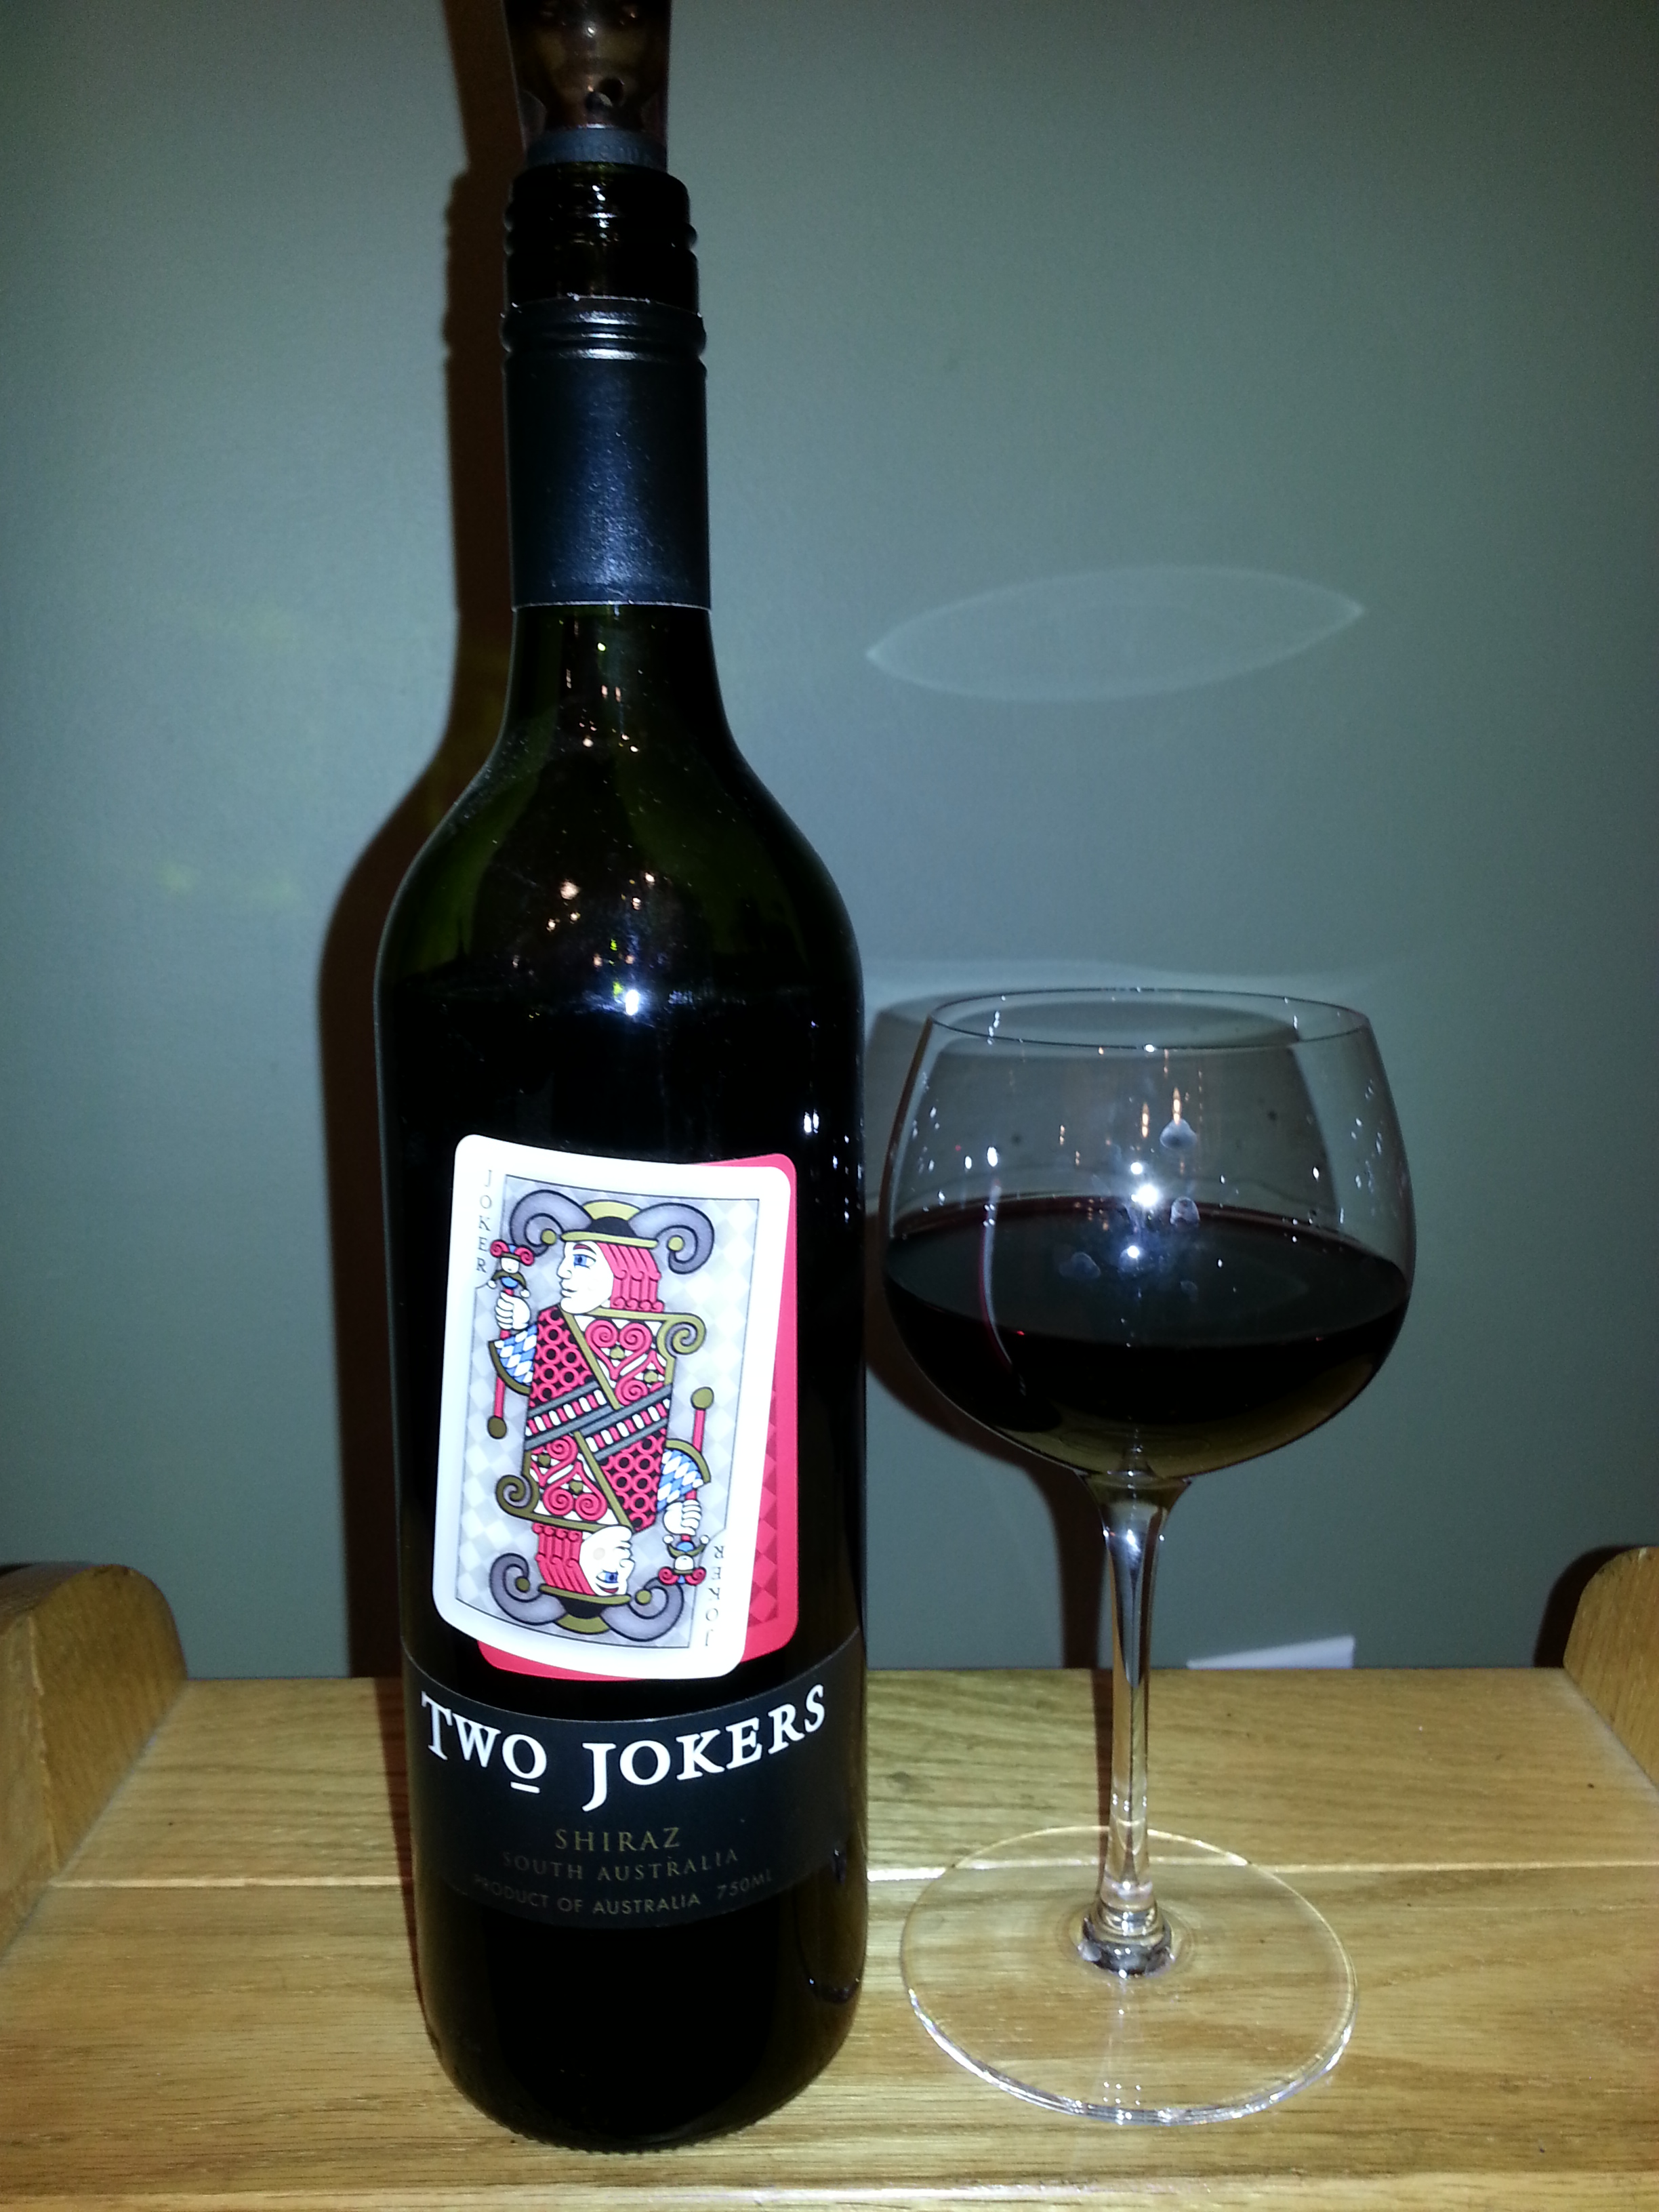 Two Jokers Shiraz (2009)